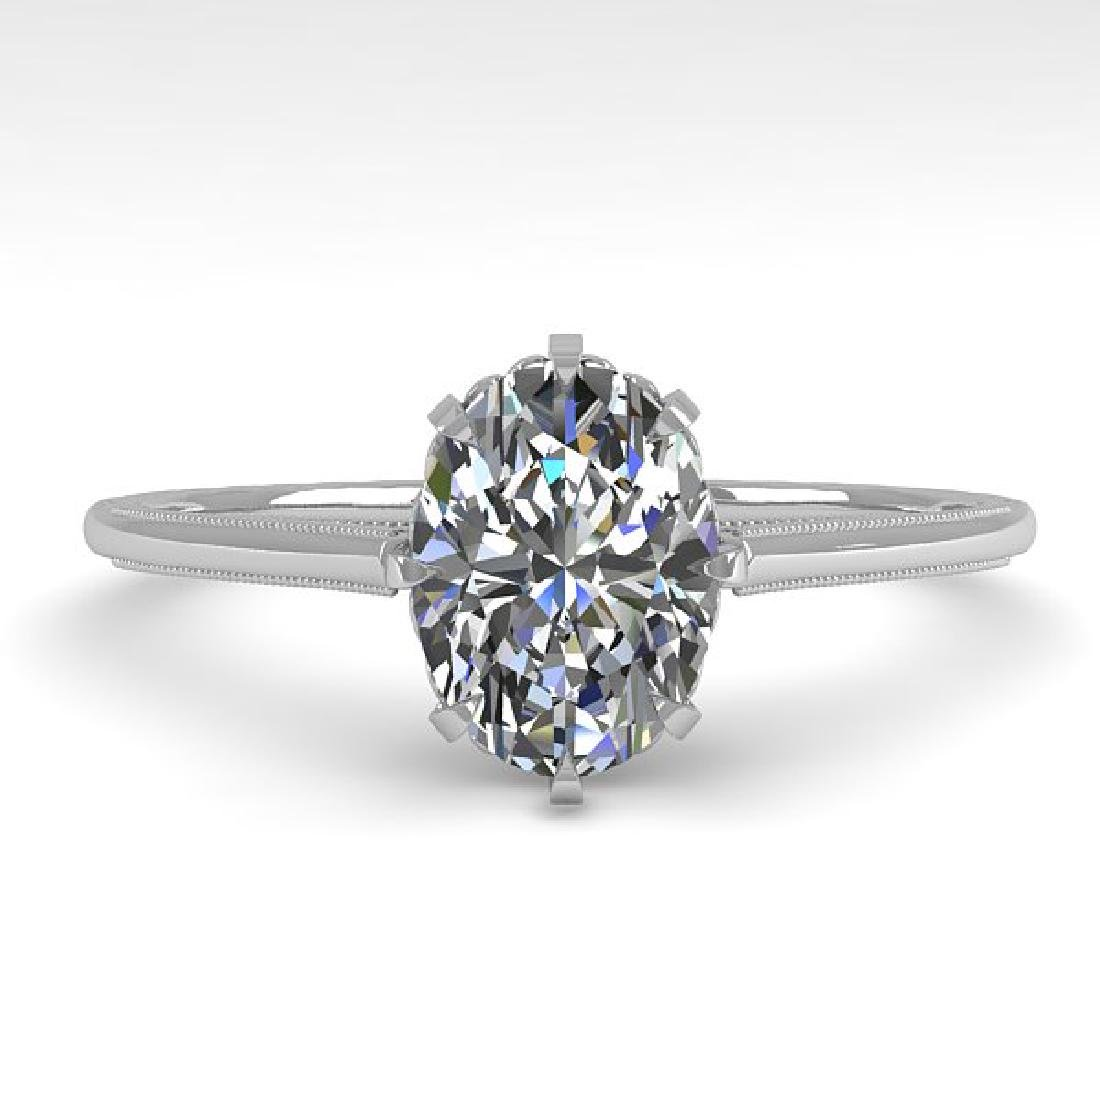 1.0 CTW VS/SI Oval Diamond Solitaire Engagement Ring